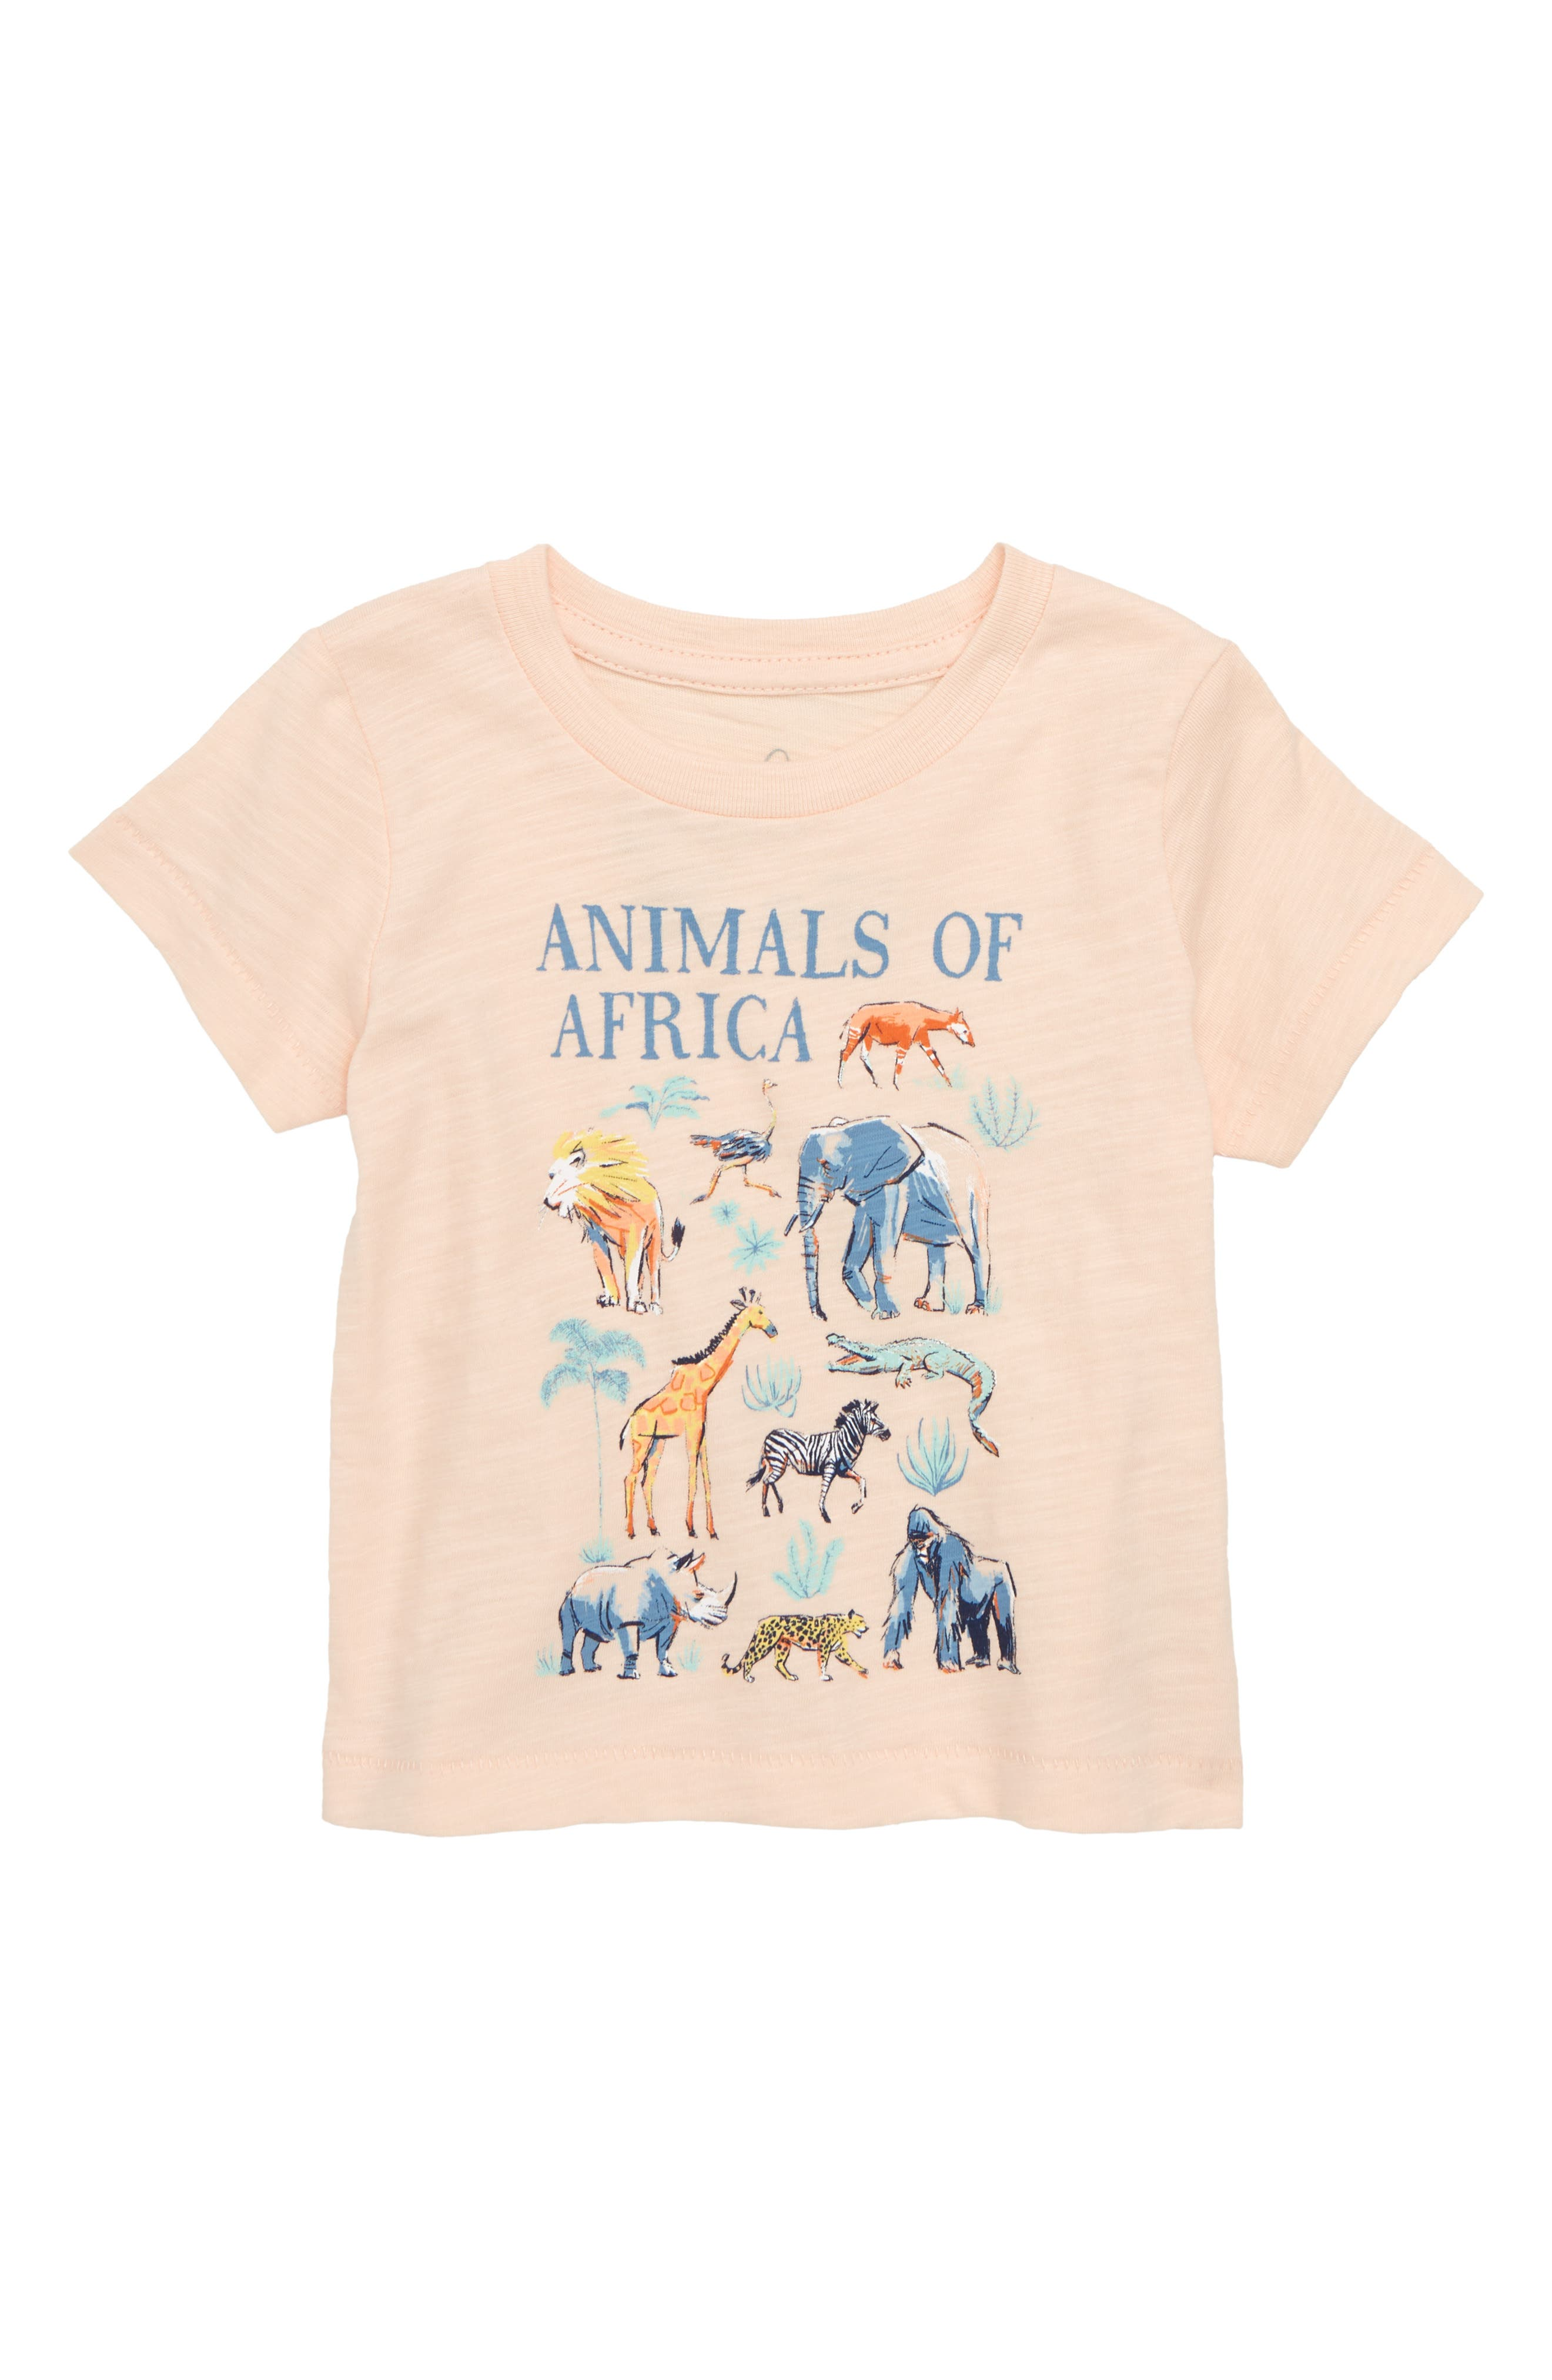 Animals of Africa Graphic Tee,                         Main,                         color, Peach